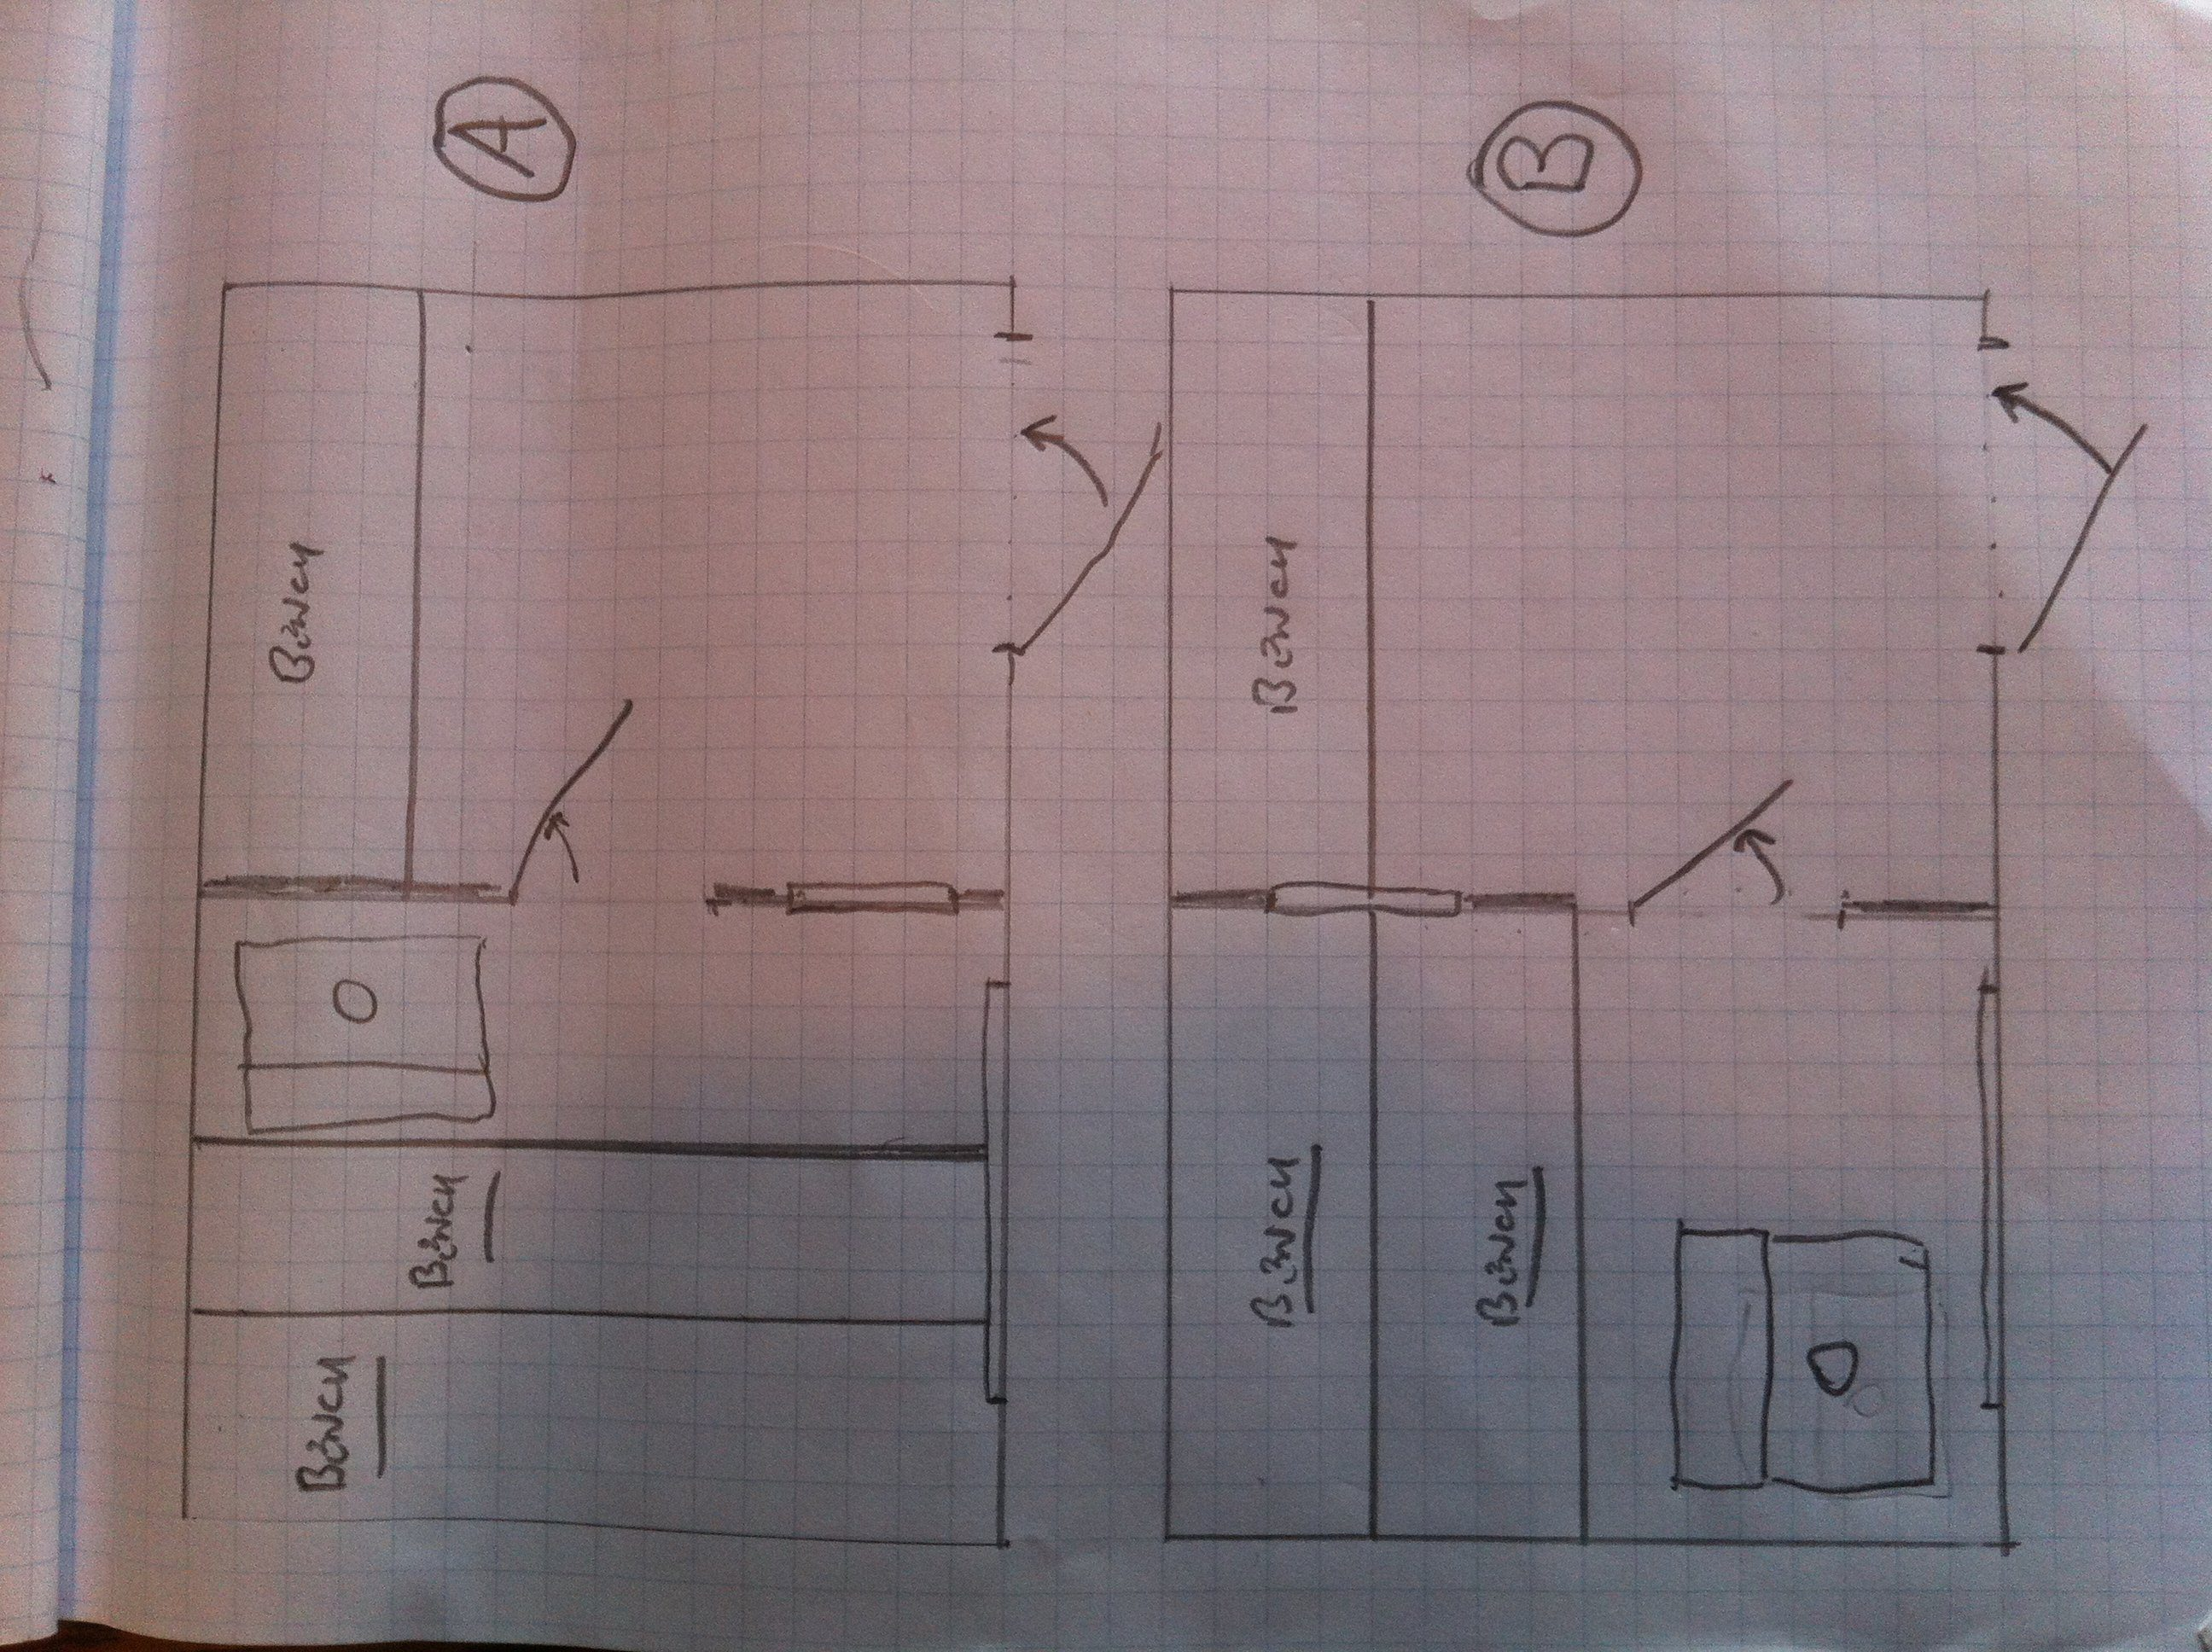 Sauna plans for your left and right brain saunatimes for Sauna floor plans